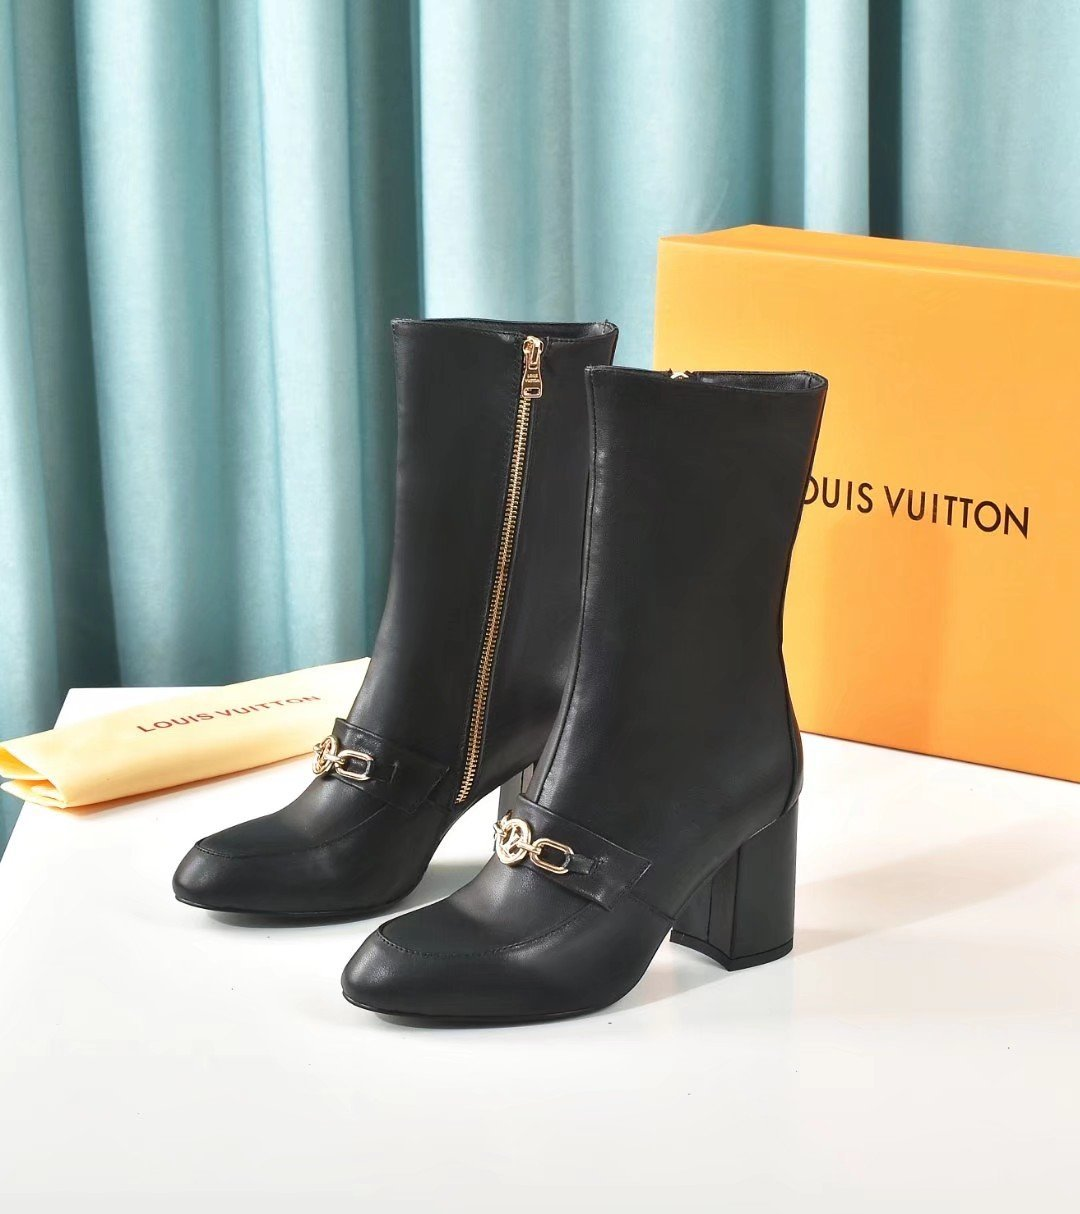 Image of LV Louis Vuitton Trending Women's Leather Side Zip Lace-up Ankle Boots Shoes High Boots 07125